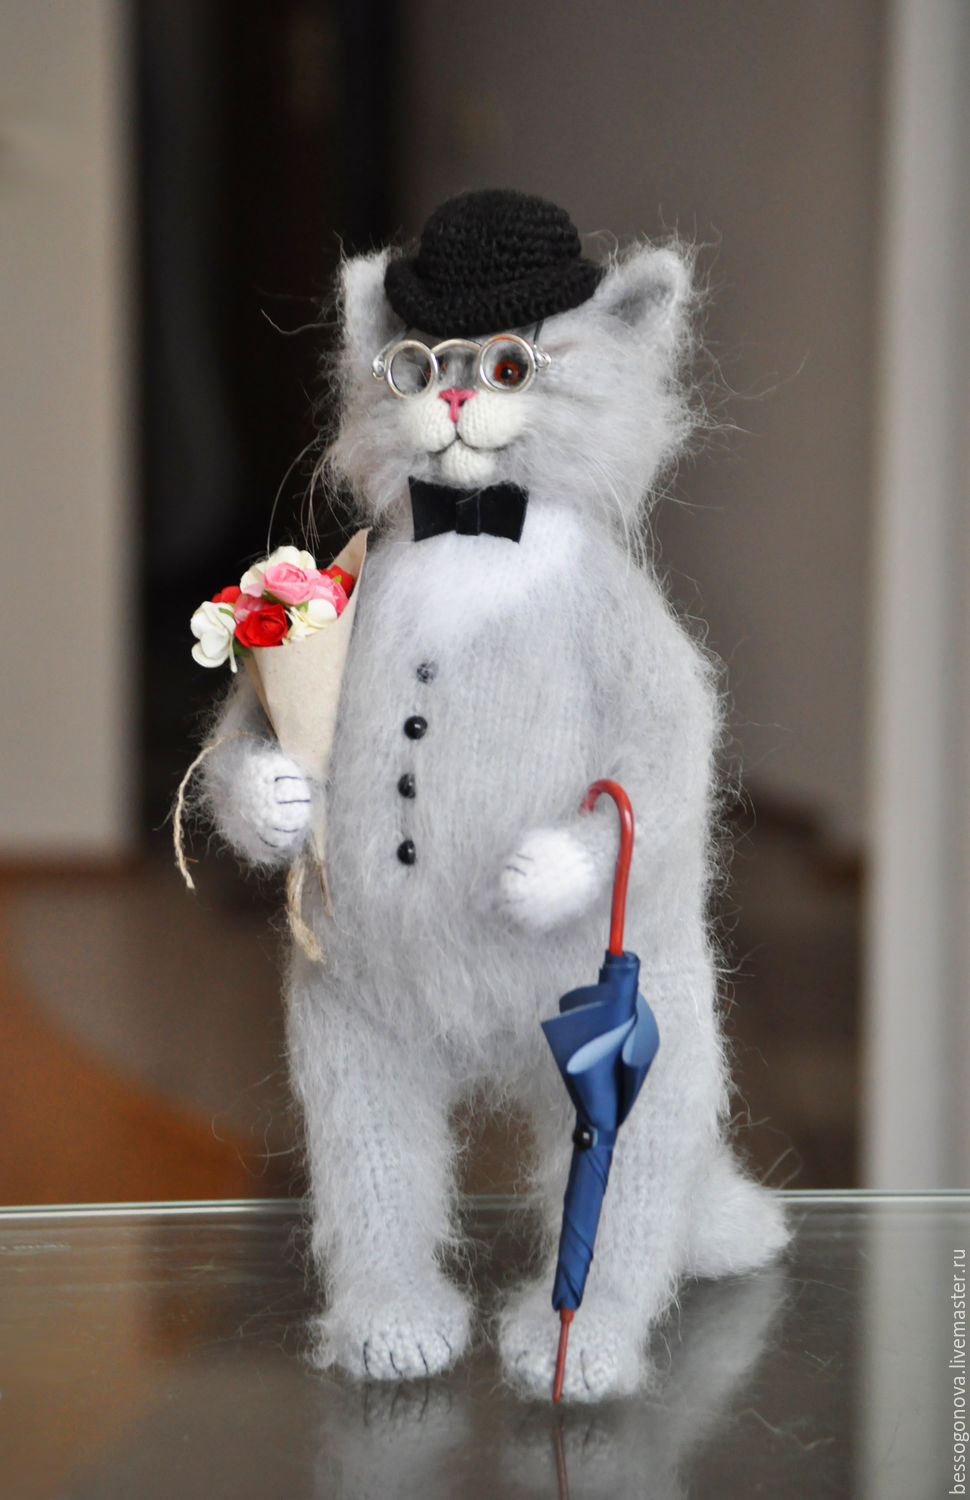 Author's toy is crocheted MR. CAT 23-30 cm(other size possible) is knitted and crocheted from natural wool and mohair, glass eyes. Inside the wire frame